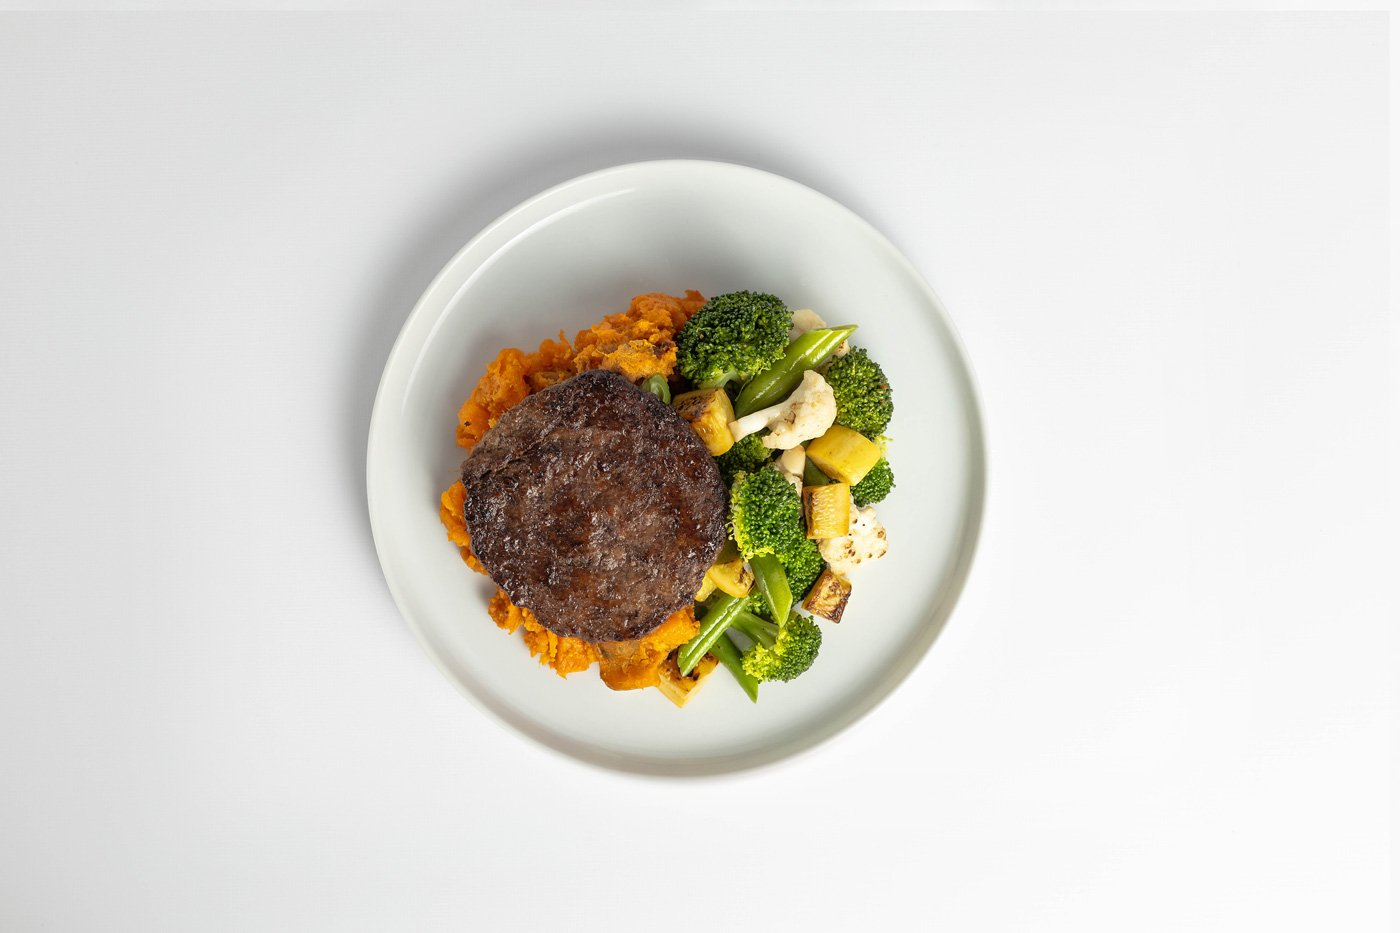 Beef Patty, Sweet Potato, Mixed Vegetables Meal Product Image